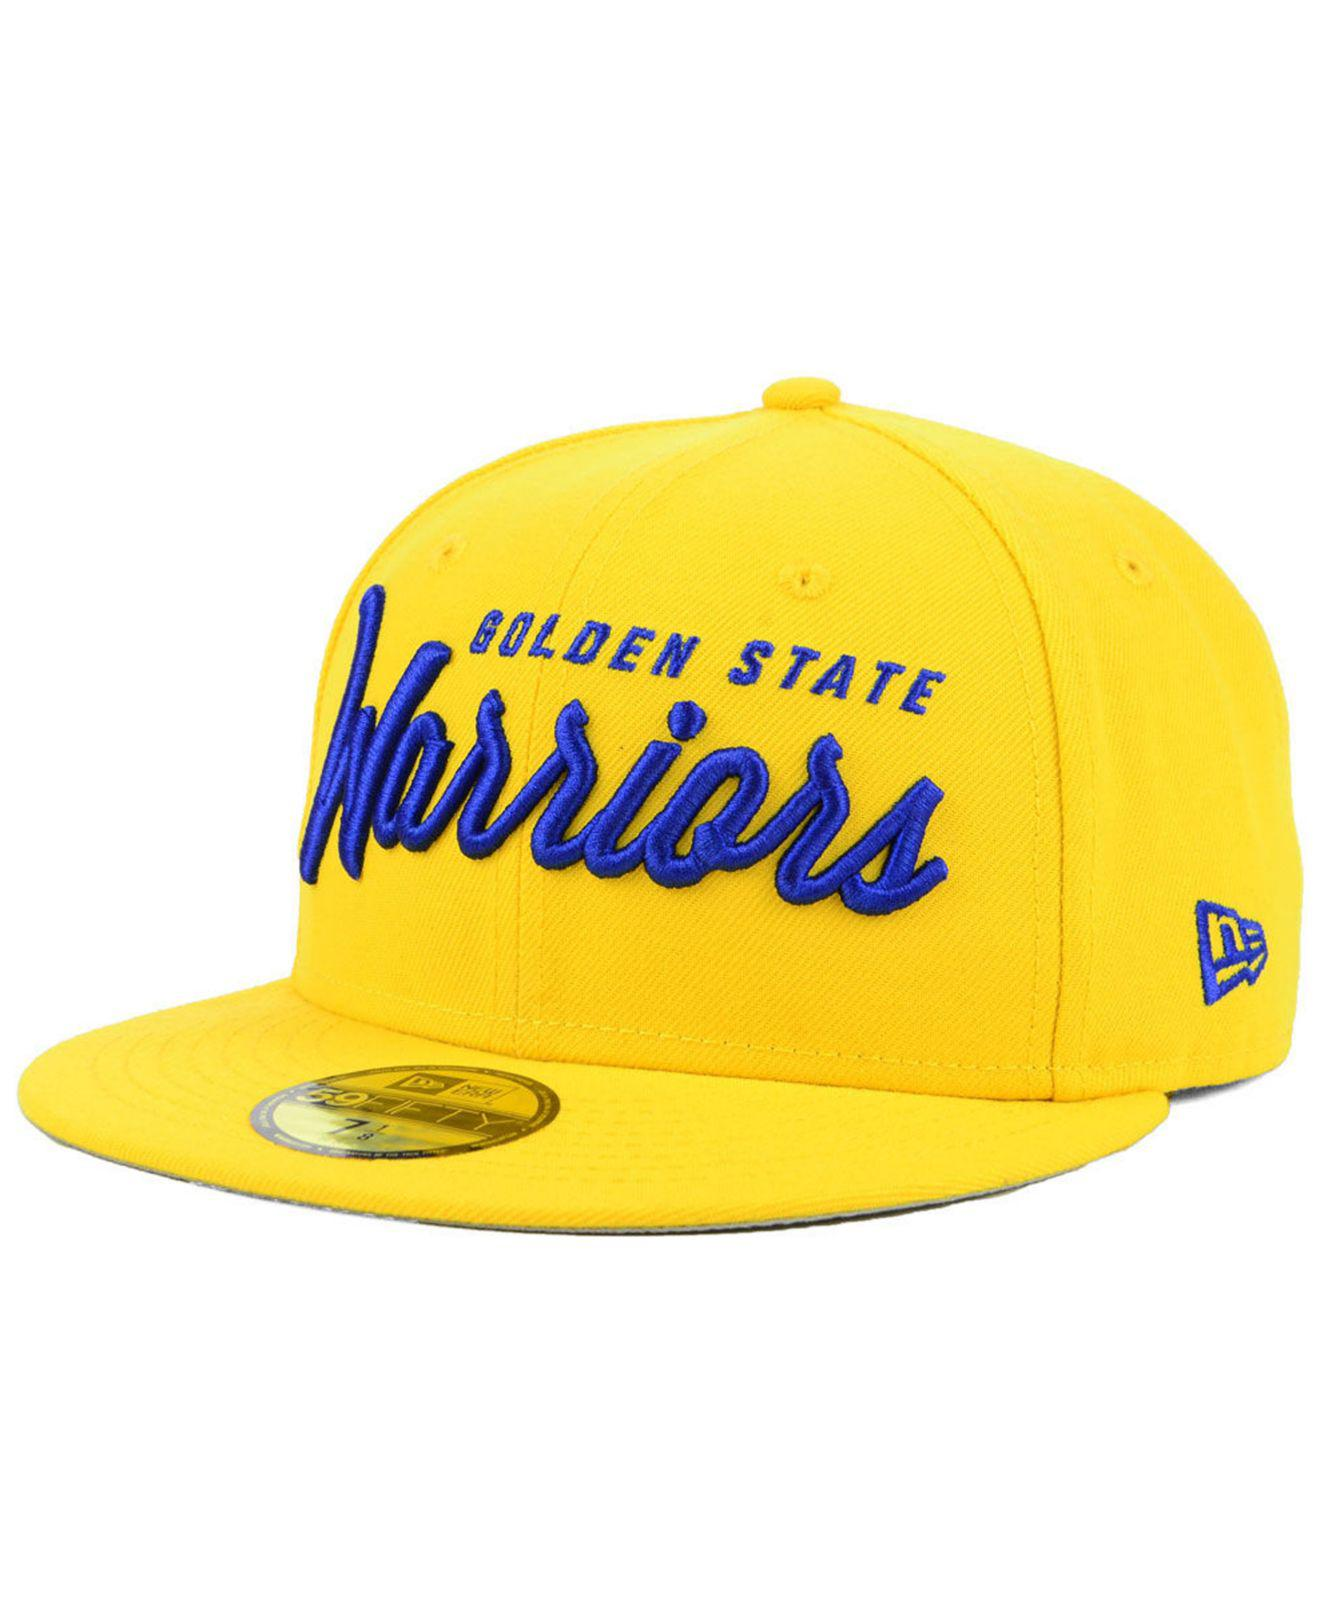 uk availability 7f2c2 3070d KTZ Golden State Warriors Classic Script 59fifty Fitted Cap in Blue ...